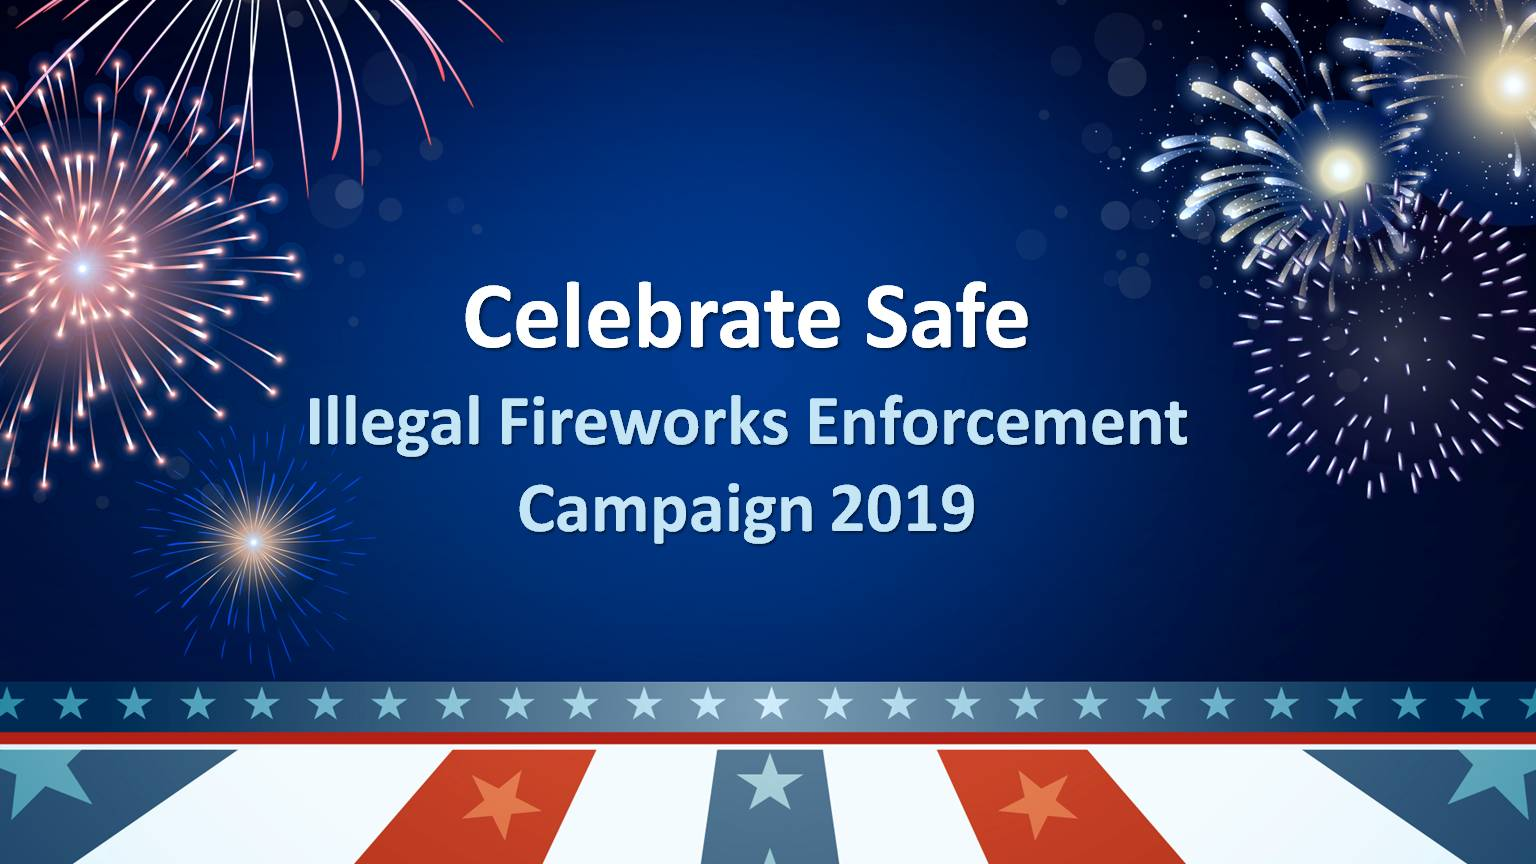 Illegal Fireworks Enforcement Photo